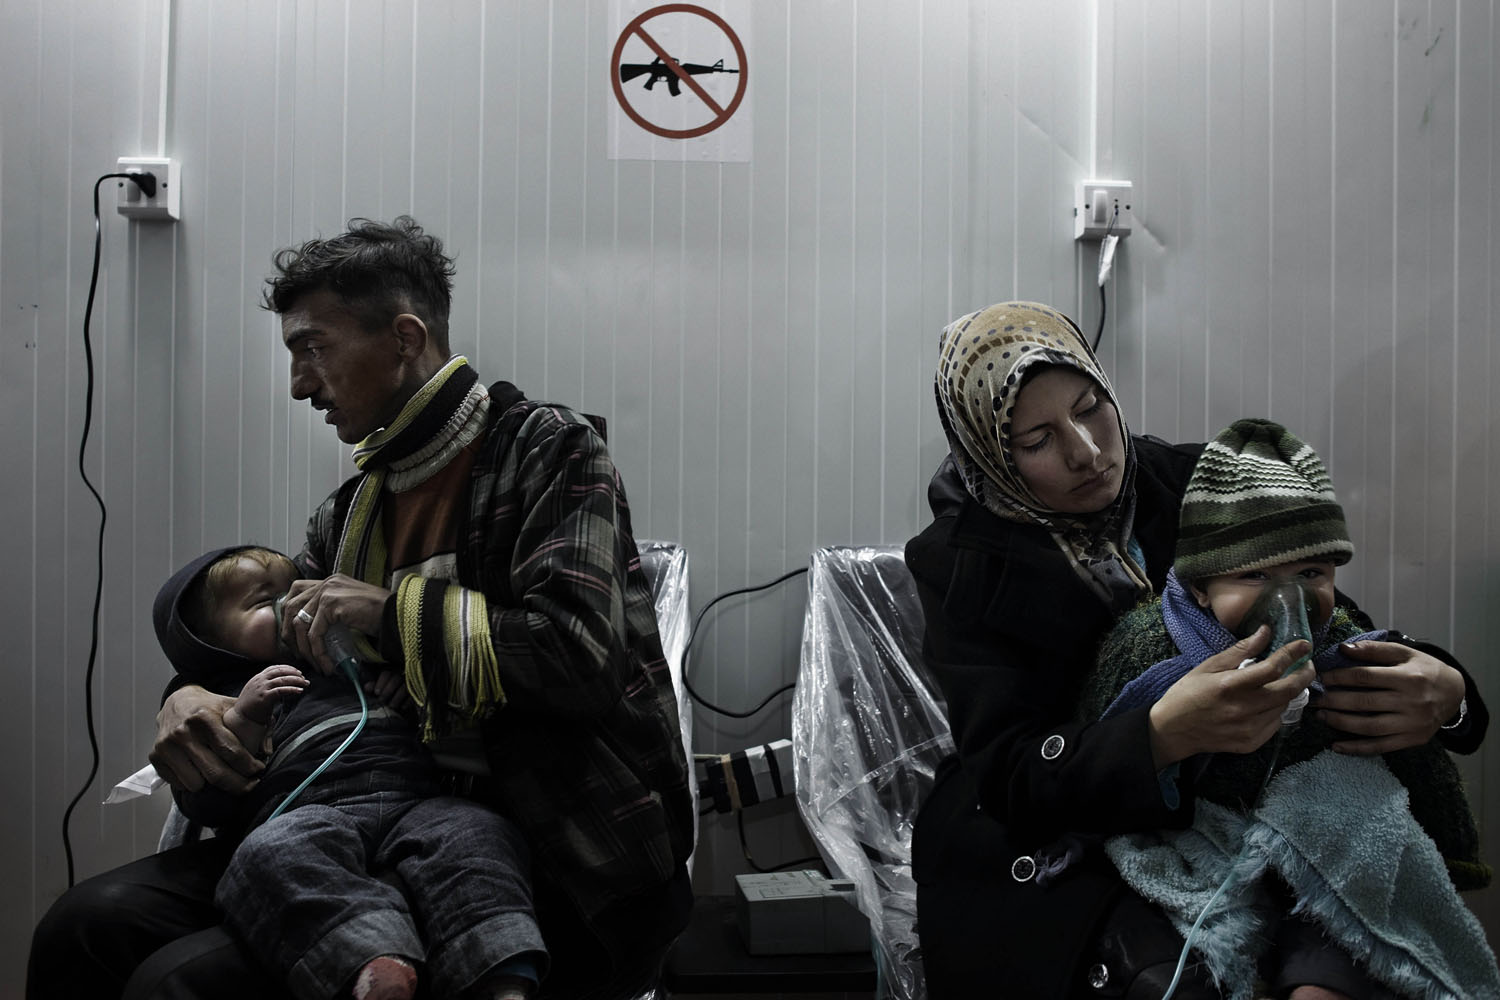 Jan. 12, 2013. The largest camp for displaced Syrians on the border with Turkey provides shelter to nearly 13,000 people. Most of them are children; due to the harsh living conditions, they are often in need of treatment in the only medical facility set up in the camp.